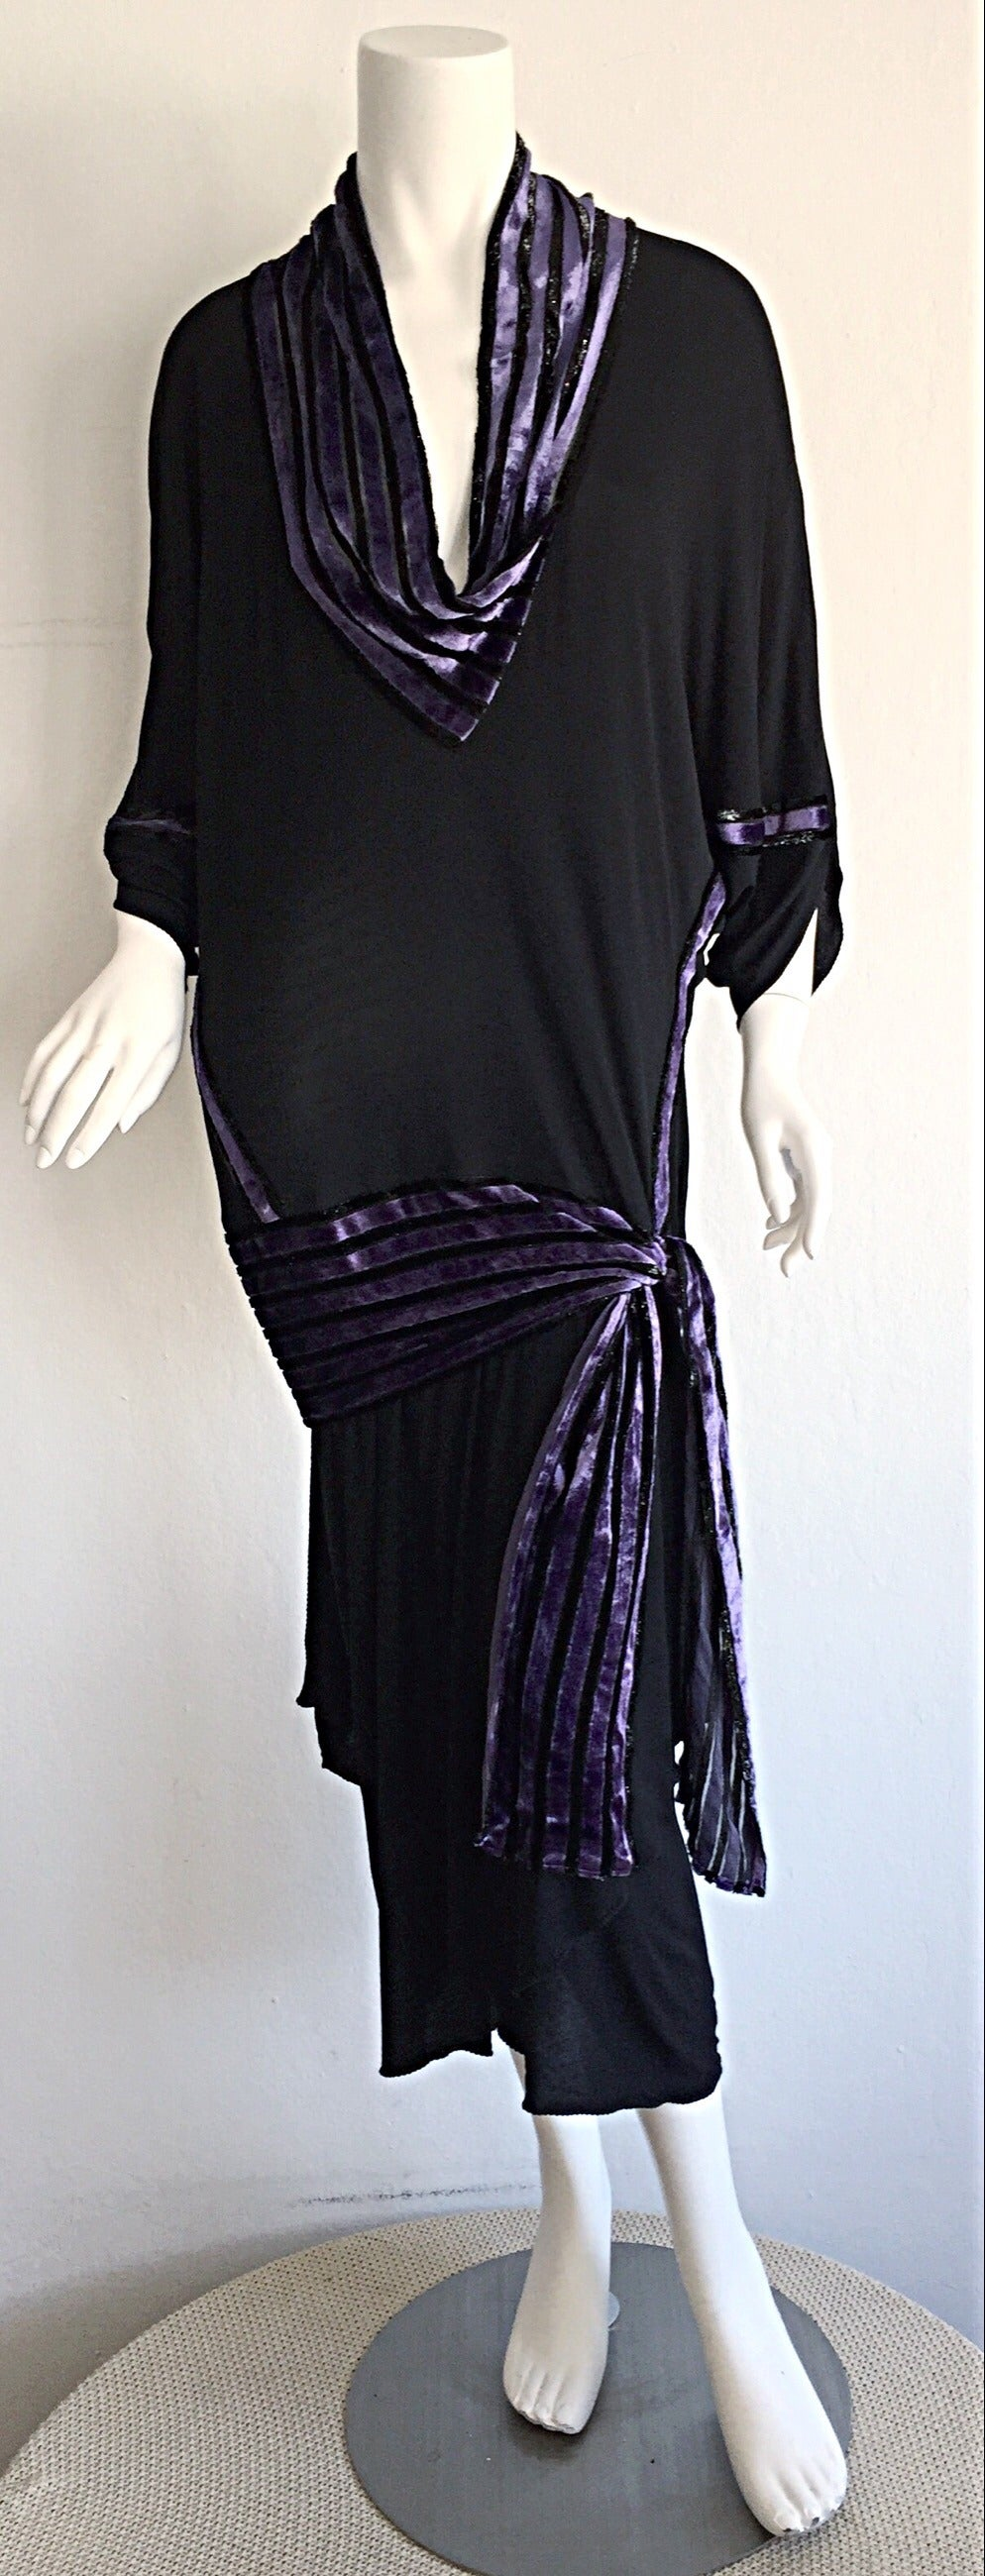 """Iconic Vintage Janice Wainwright Black Flapper Style """" Roaring 20s"""" Jersey Dress For Sale 3"""